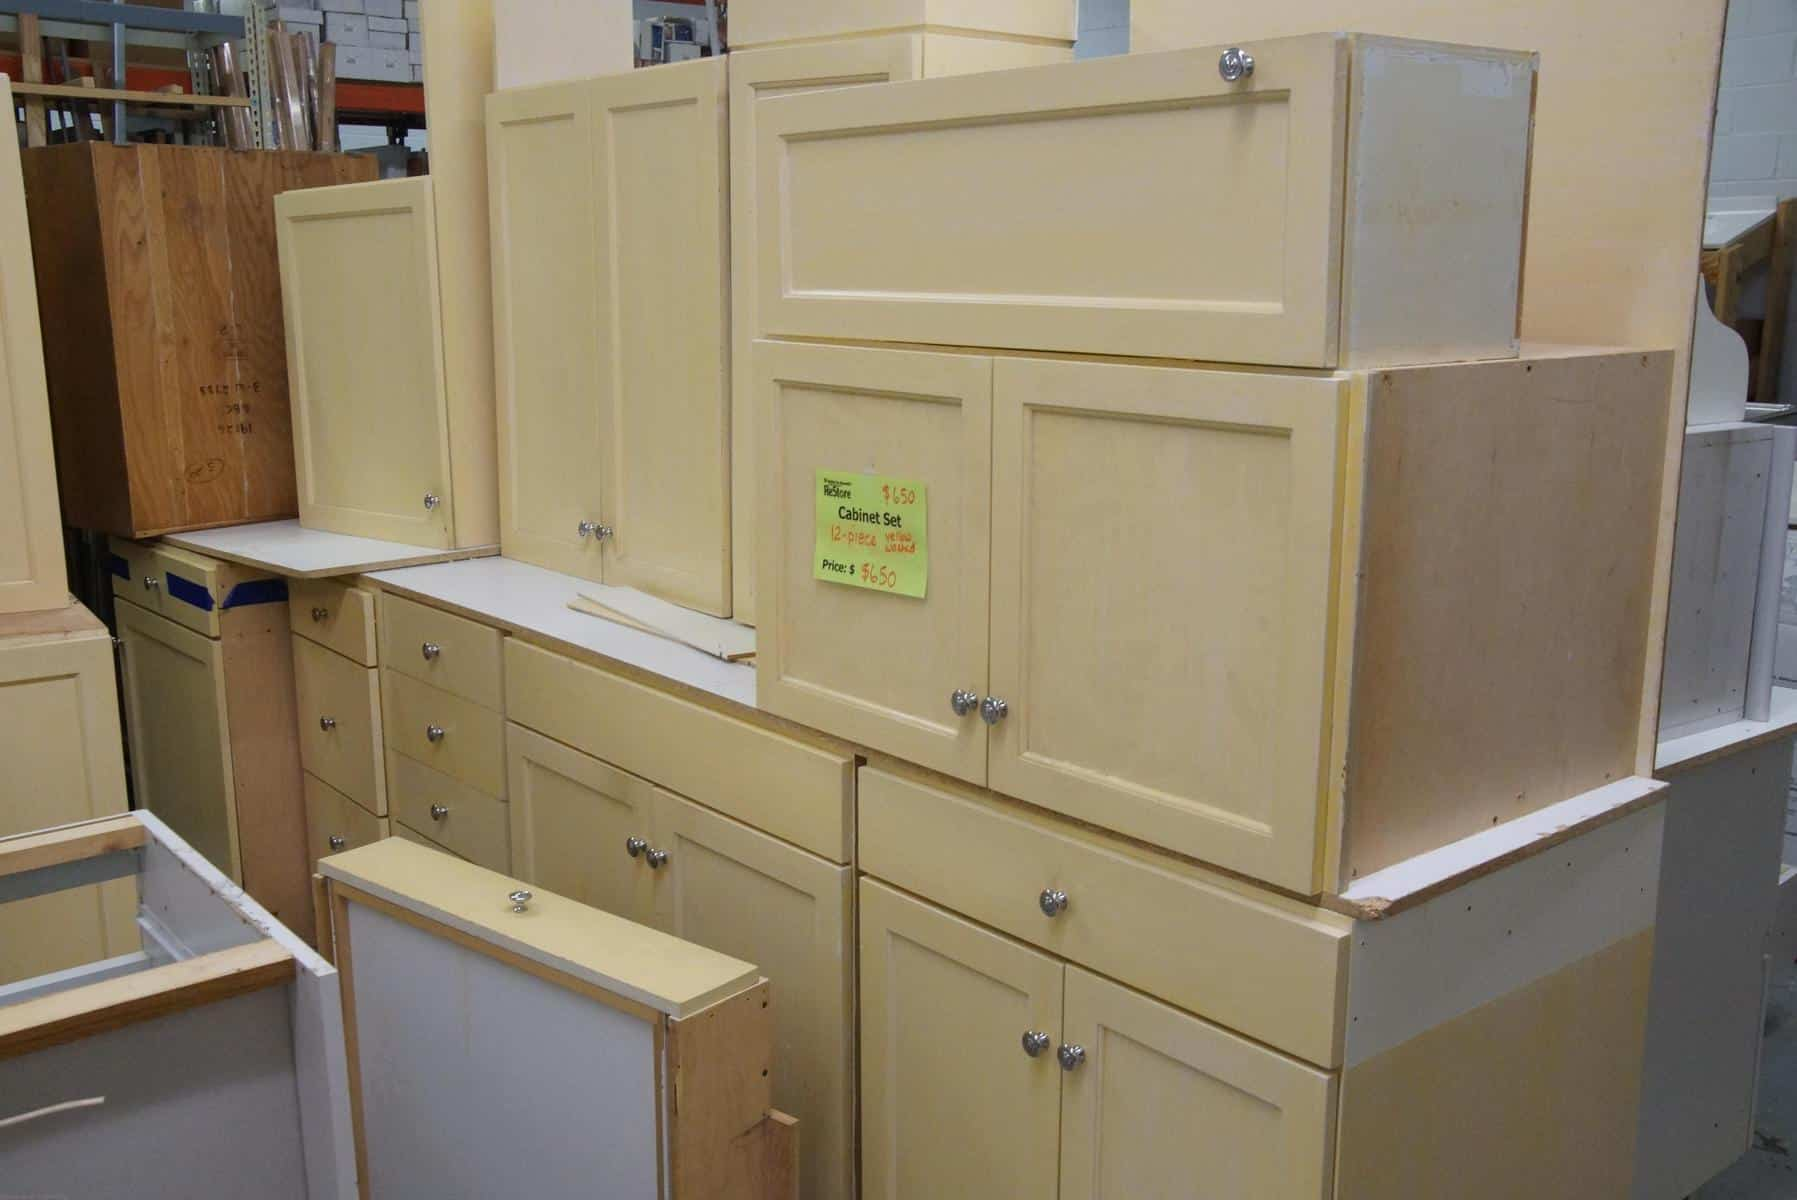 donating kitchen cabinets to habitat for humanity habitat for humanity restore kitchen cabinets habitat for 14999